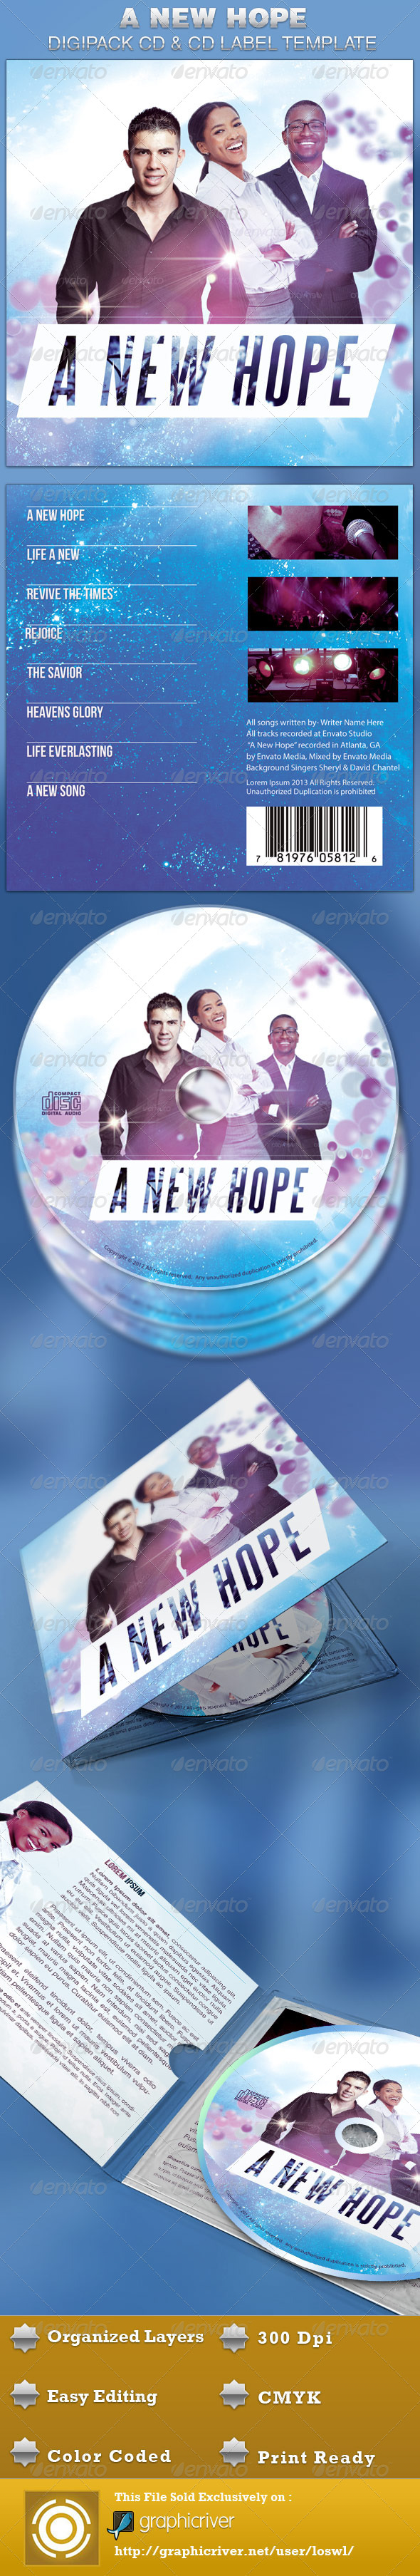 GraphicRiver A New Hope Digipack CD Artwork Template 4725740